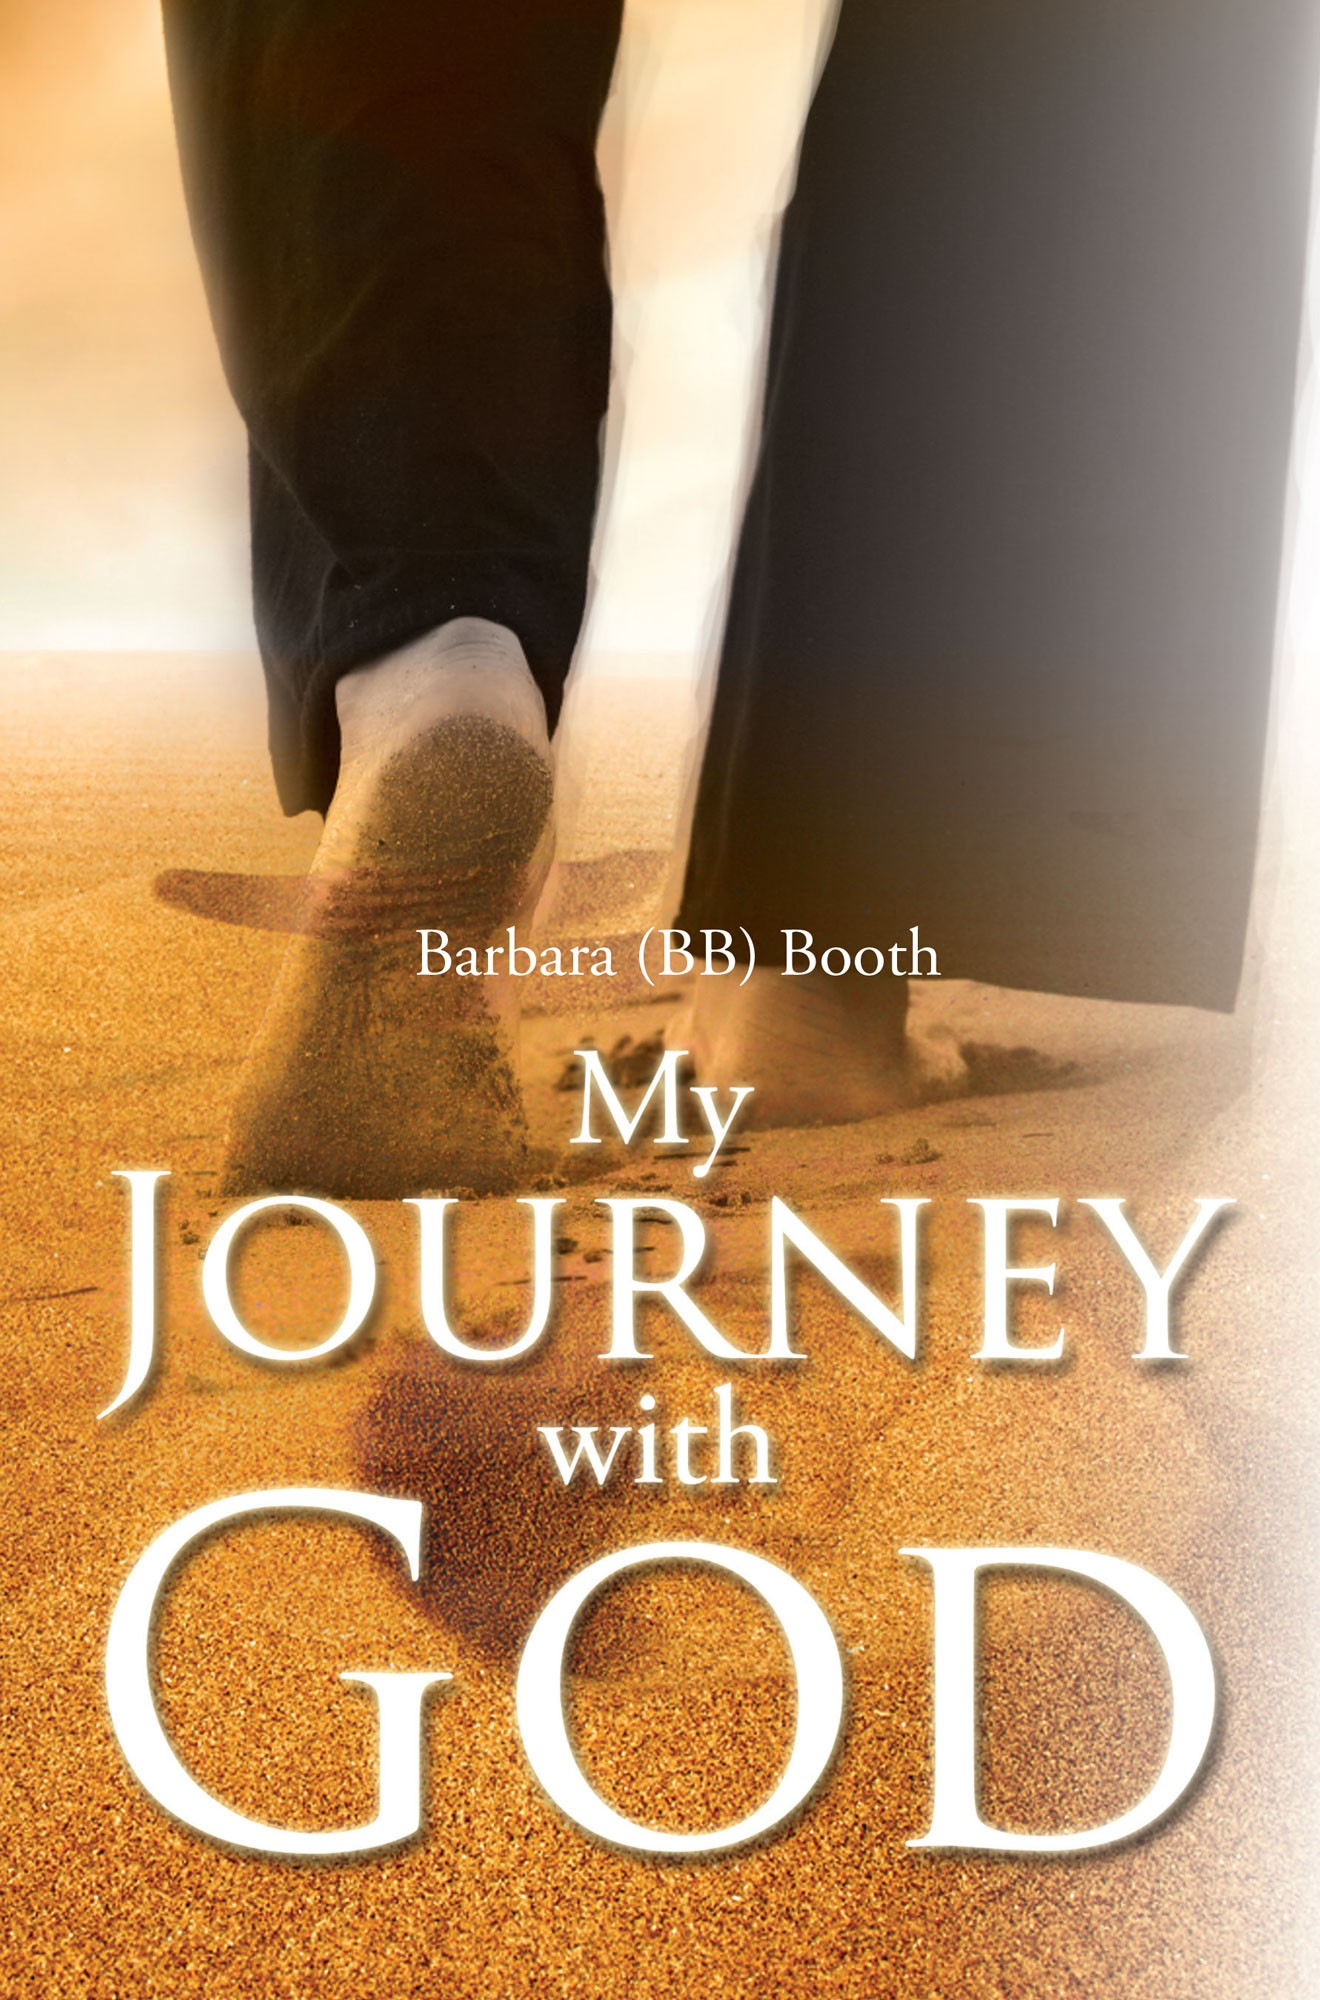 barbara  bb  booth u2019s first book  u201cmy journey with god u201d is